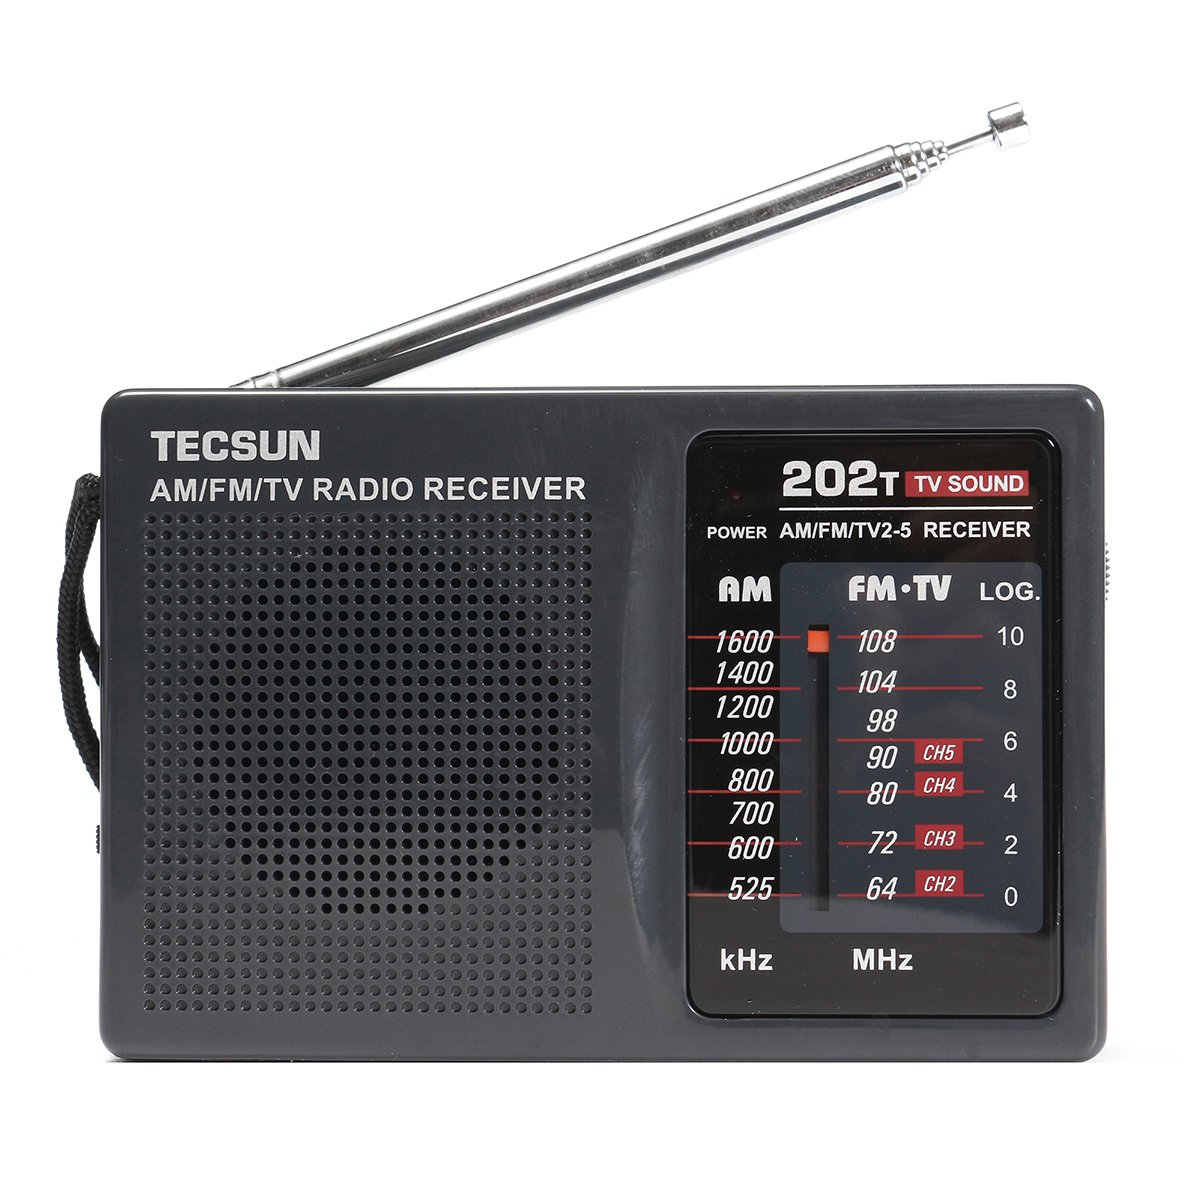 QOJA dc 3v-6v tecsun mini portable radio r-202t fm/am 64-108mhz